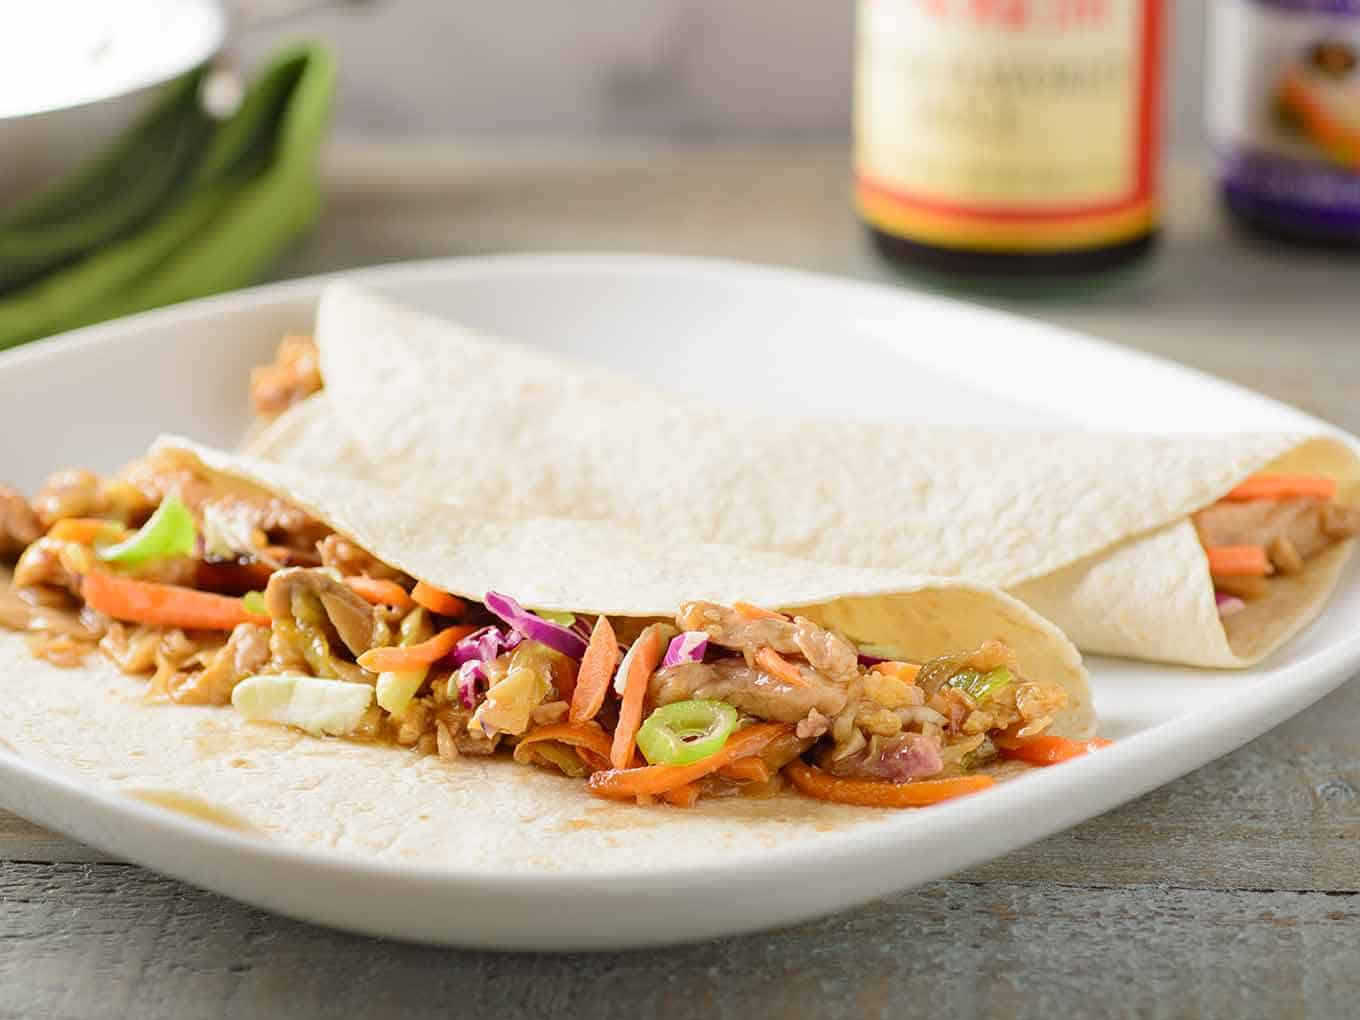 Two flour tortillas filled with Moo Shu Pork on a serving plate, one is partially open to show the ingredients.